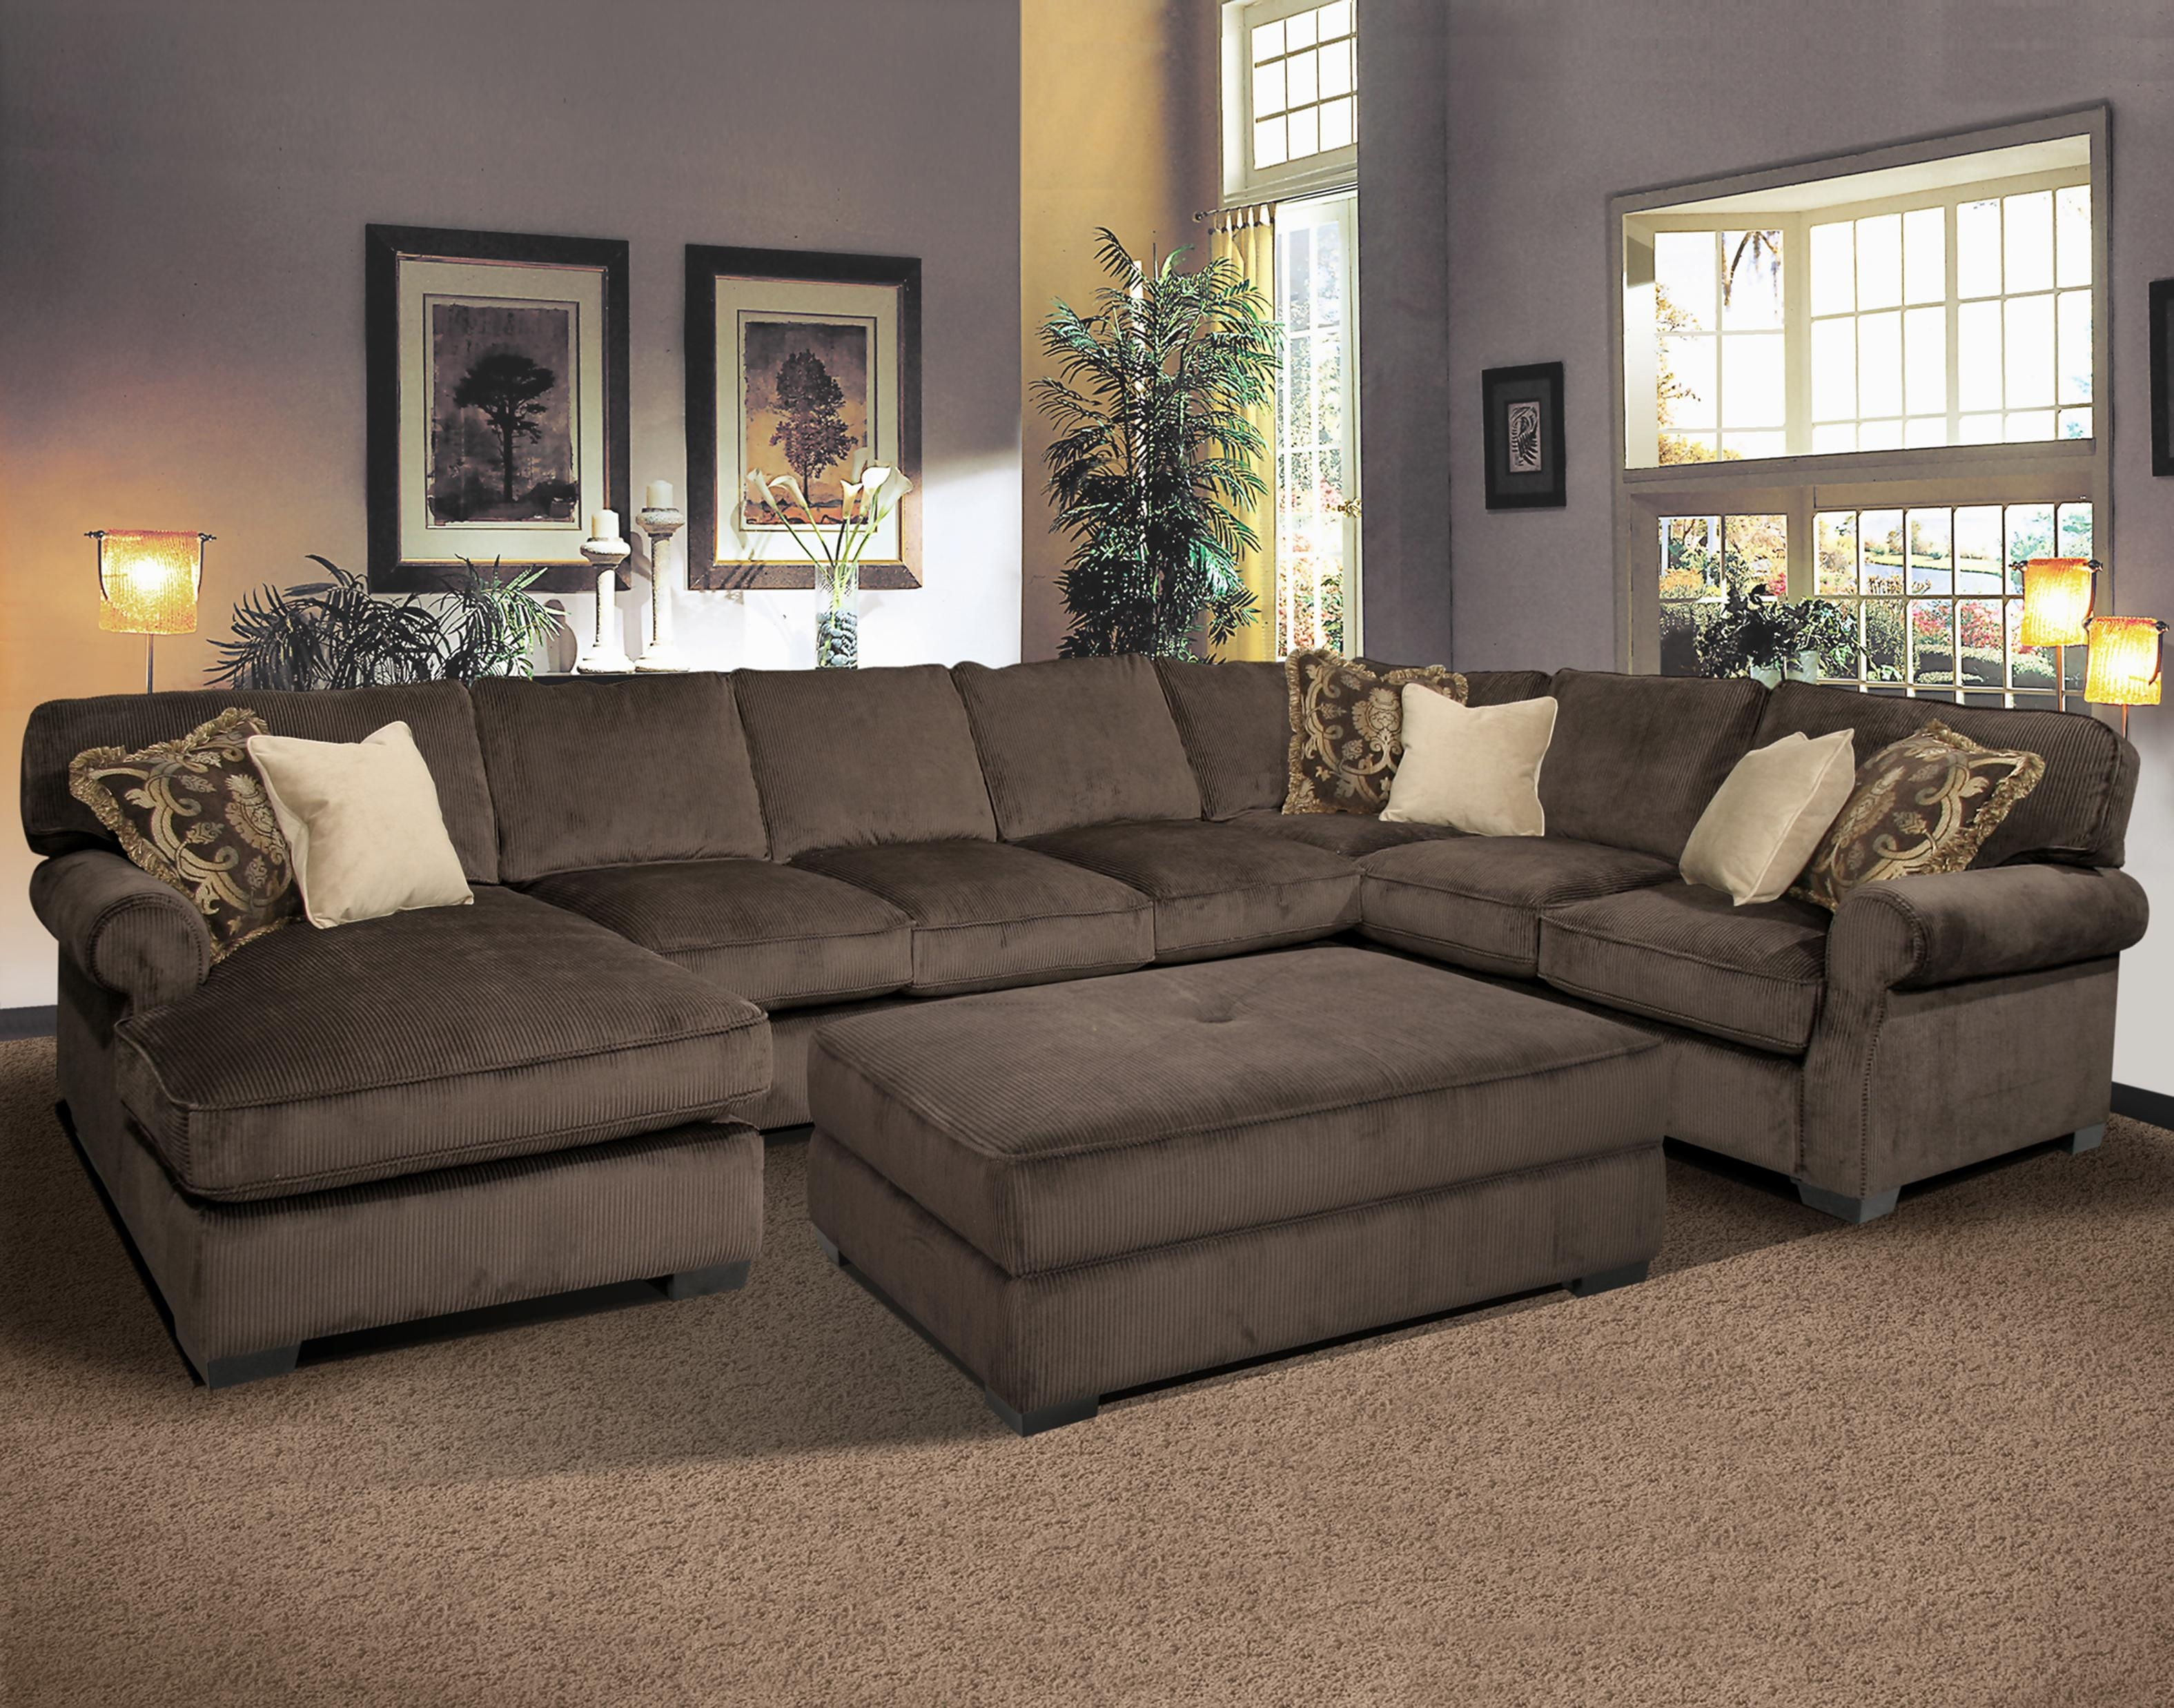 Furniture: Cheap Sectional Couches | Discount Sofas | Affordable Sofas Intended For Cheap Sectionals With Ottoman (View 5 of 10)